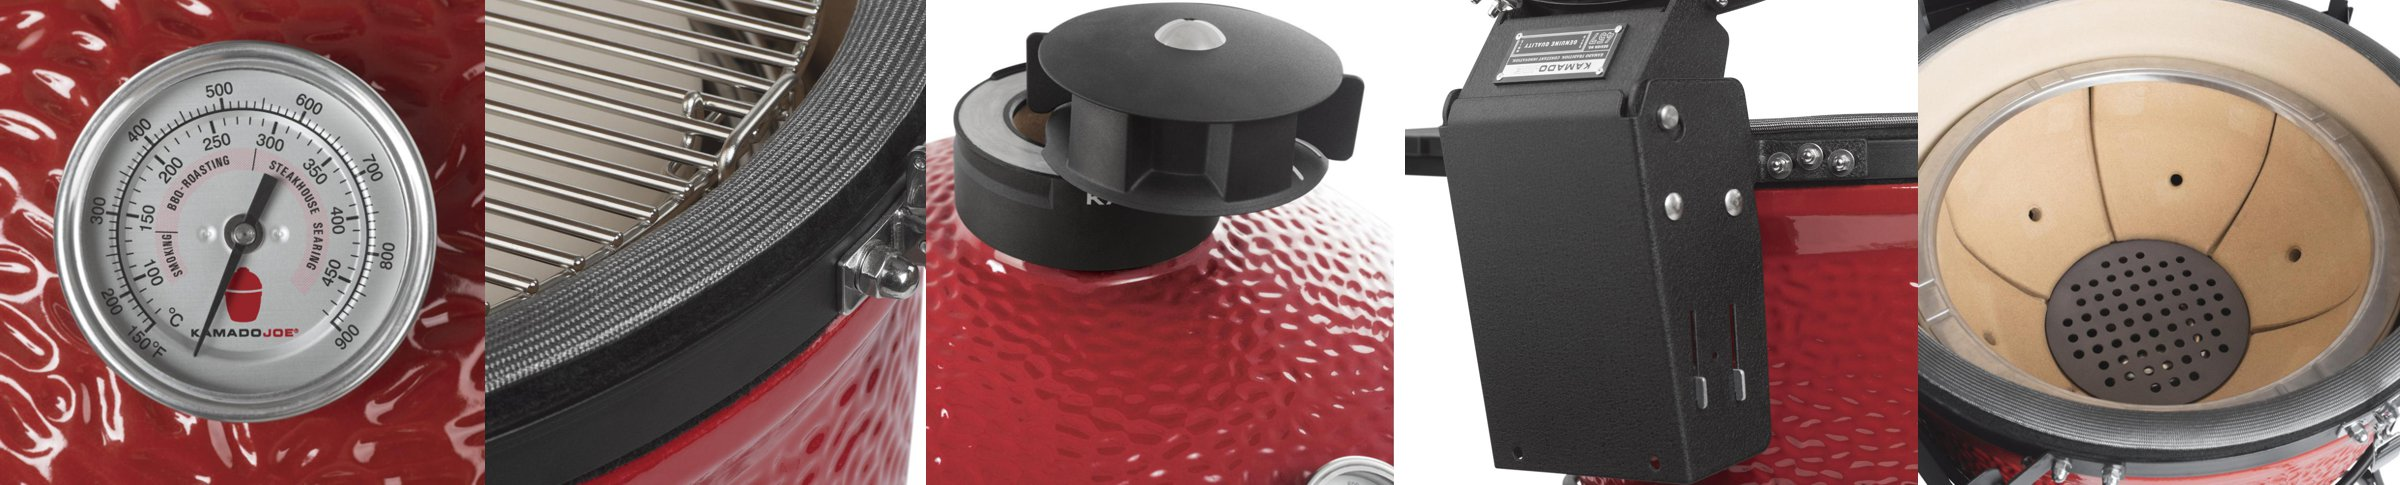 Обзор гриля Kamado Joe Big II Red